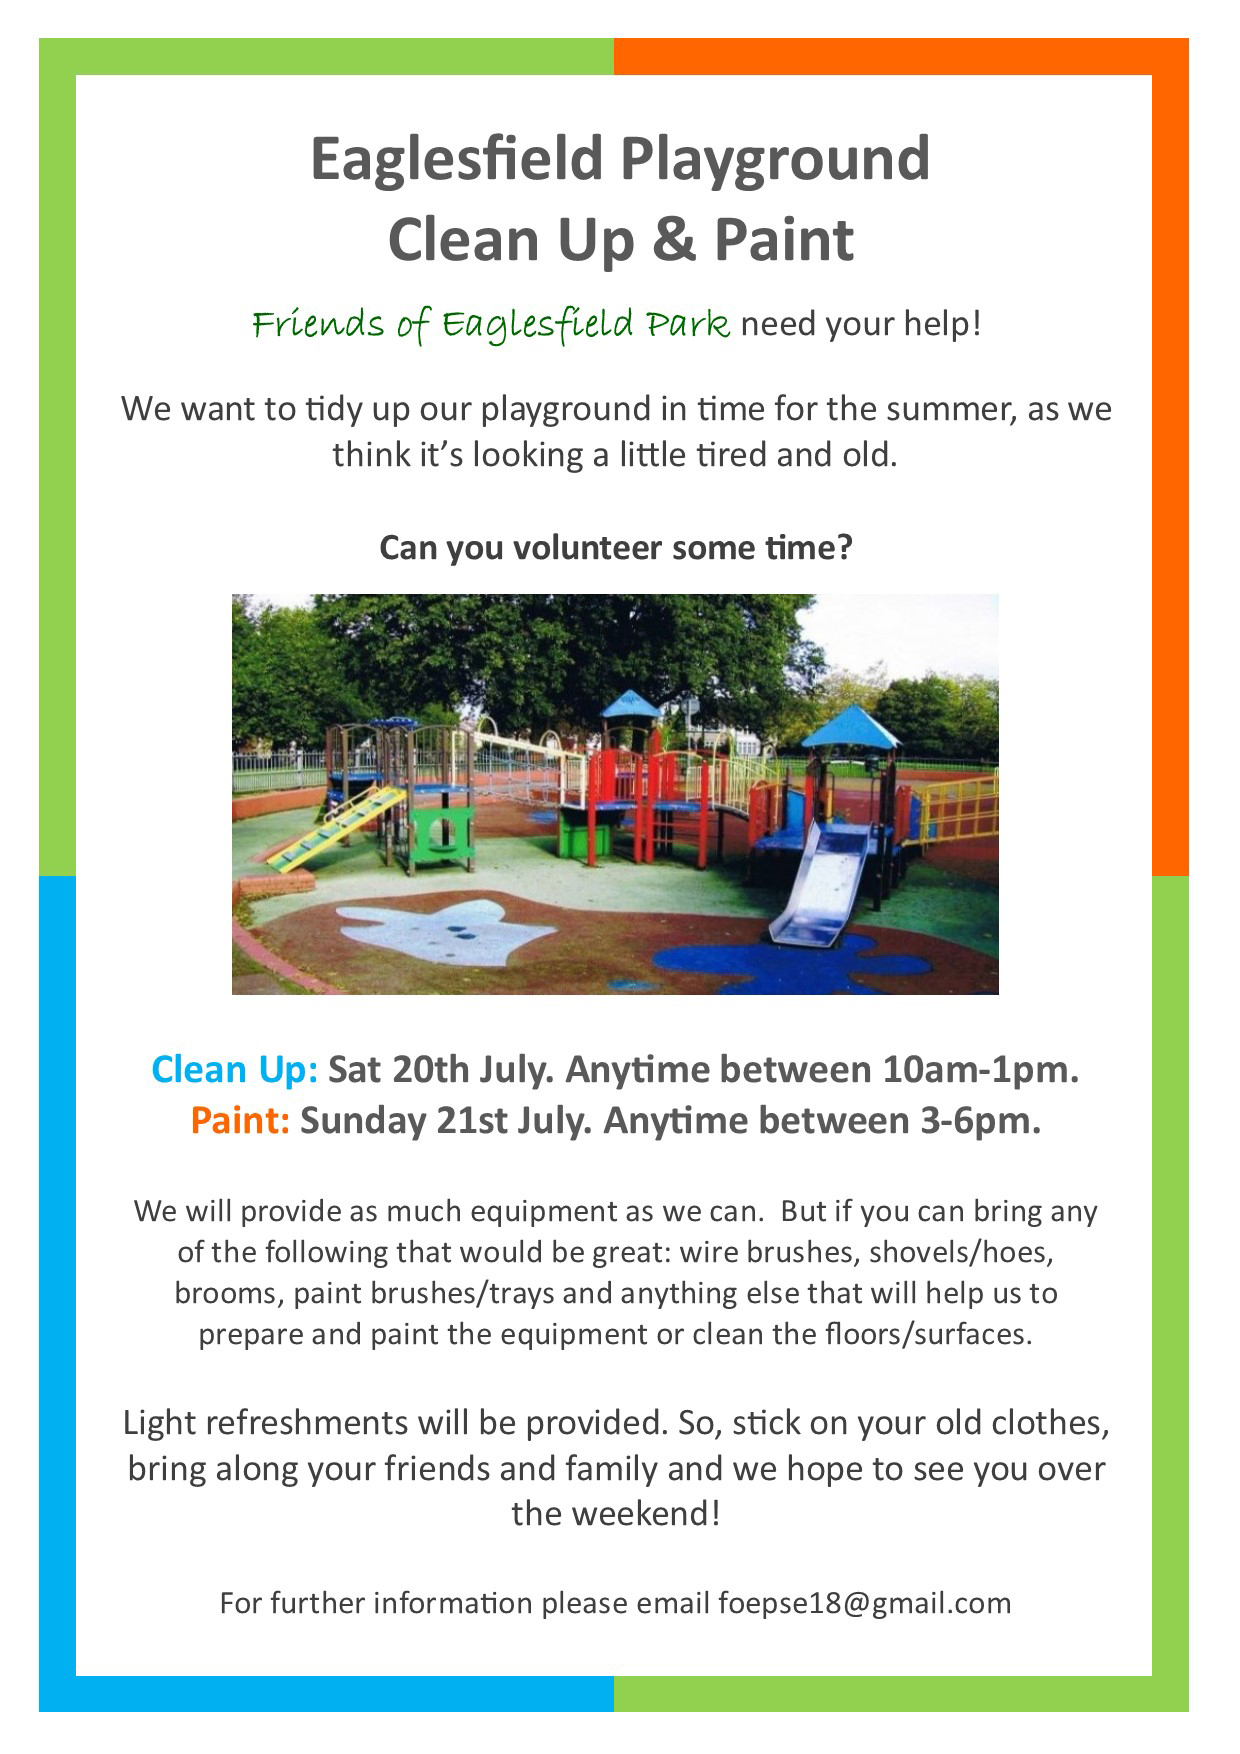 Eaglesfield Playground Clean-up and Paint Poster